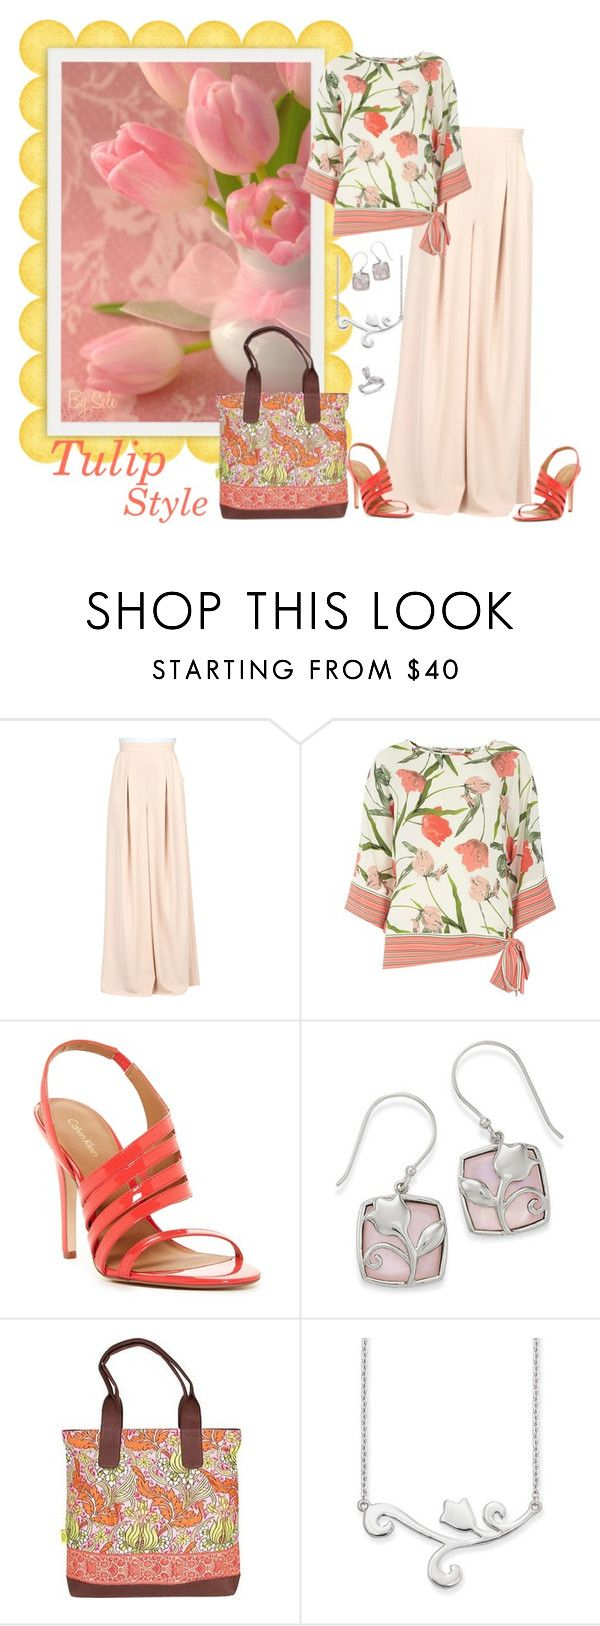 tulip style by selene cinzia liked on polyvore featuring billie blossom